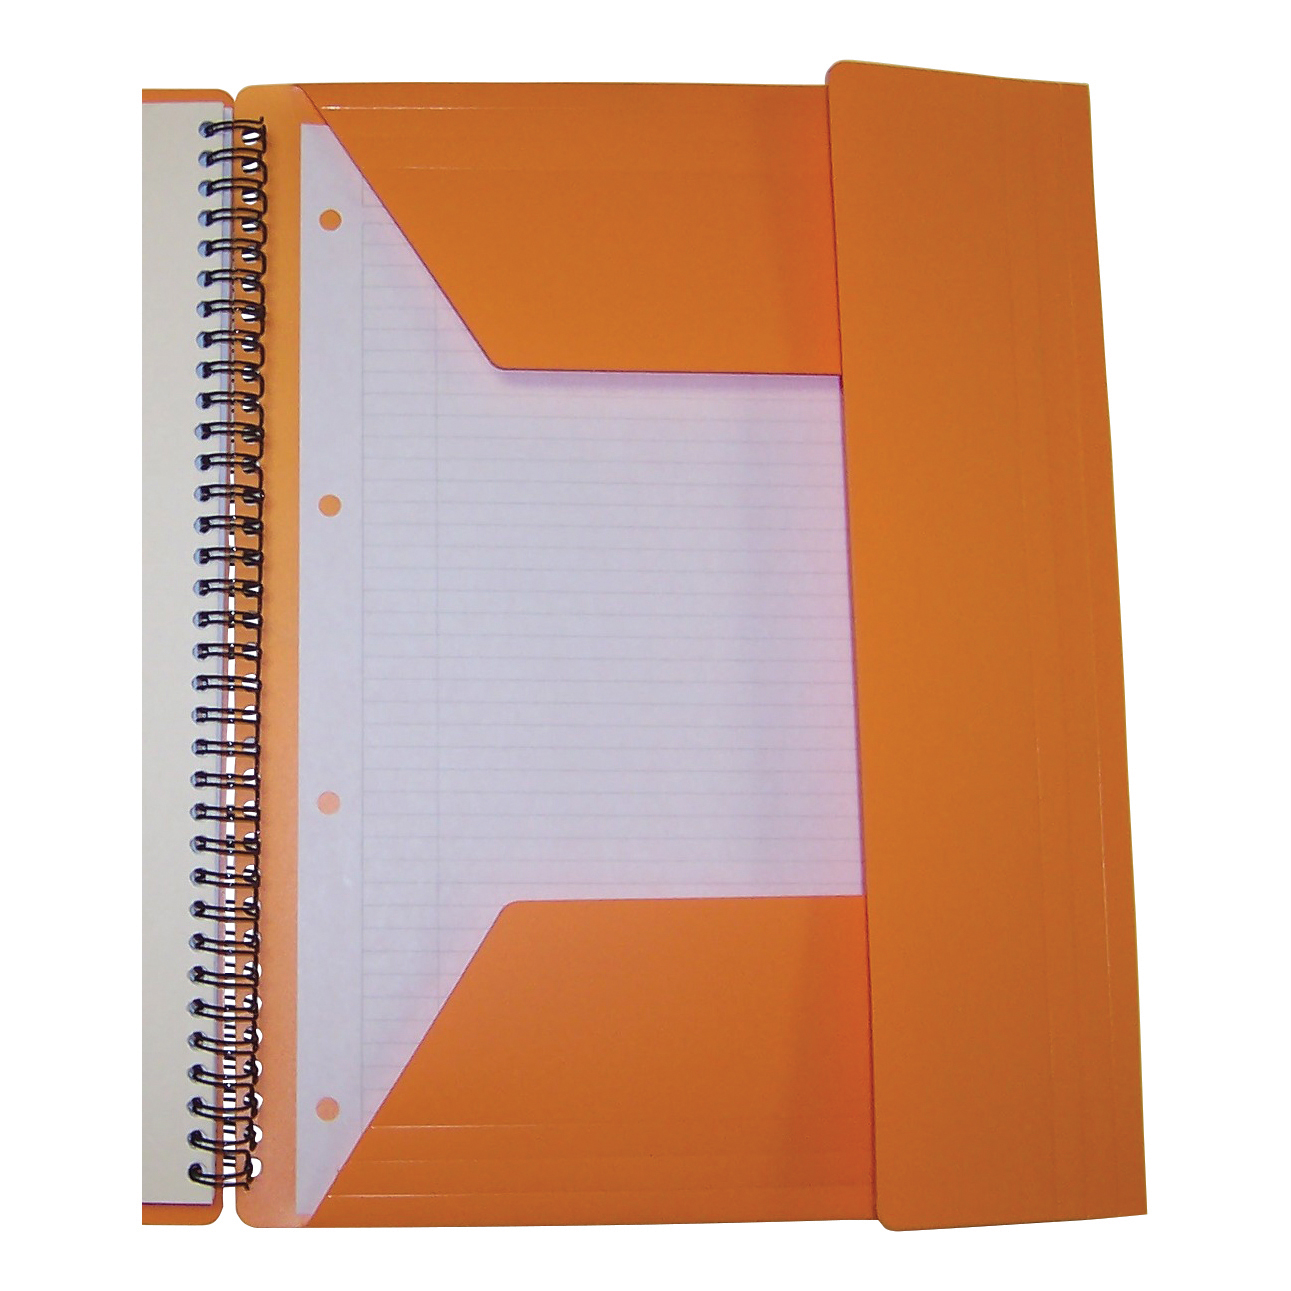 Oxford Int Meeting Nbk Poly Wbd 80gsm Smart Ruled Perf Punched 4 Holes 160pp A4+ Ref 100104296 Pack 5